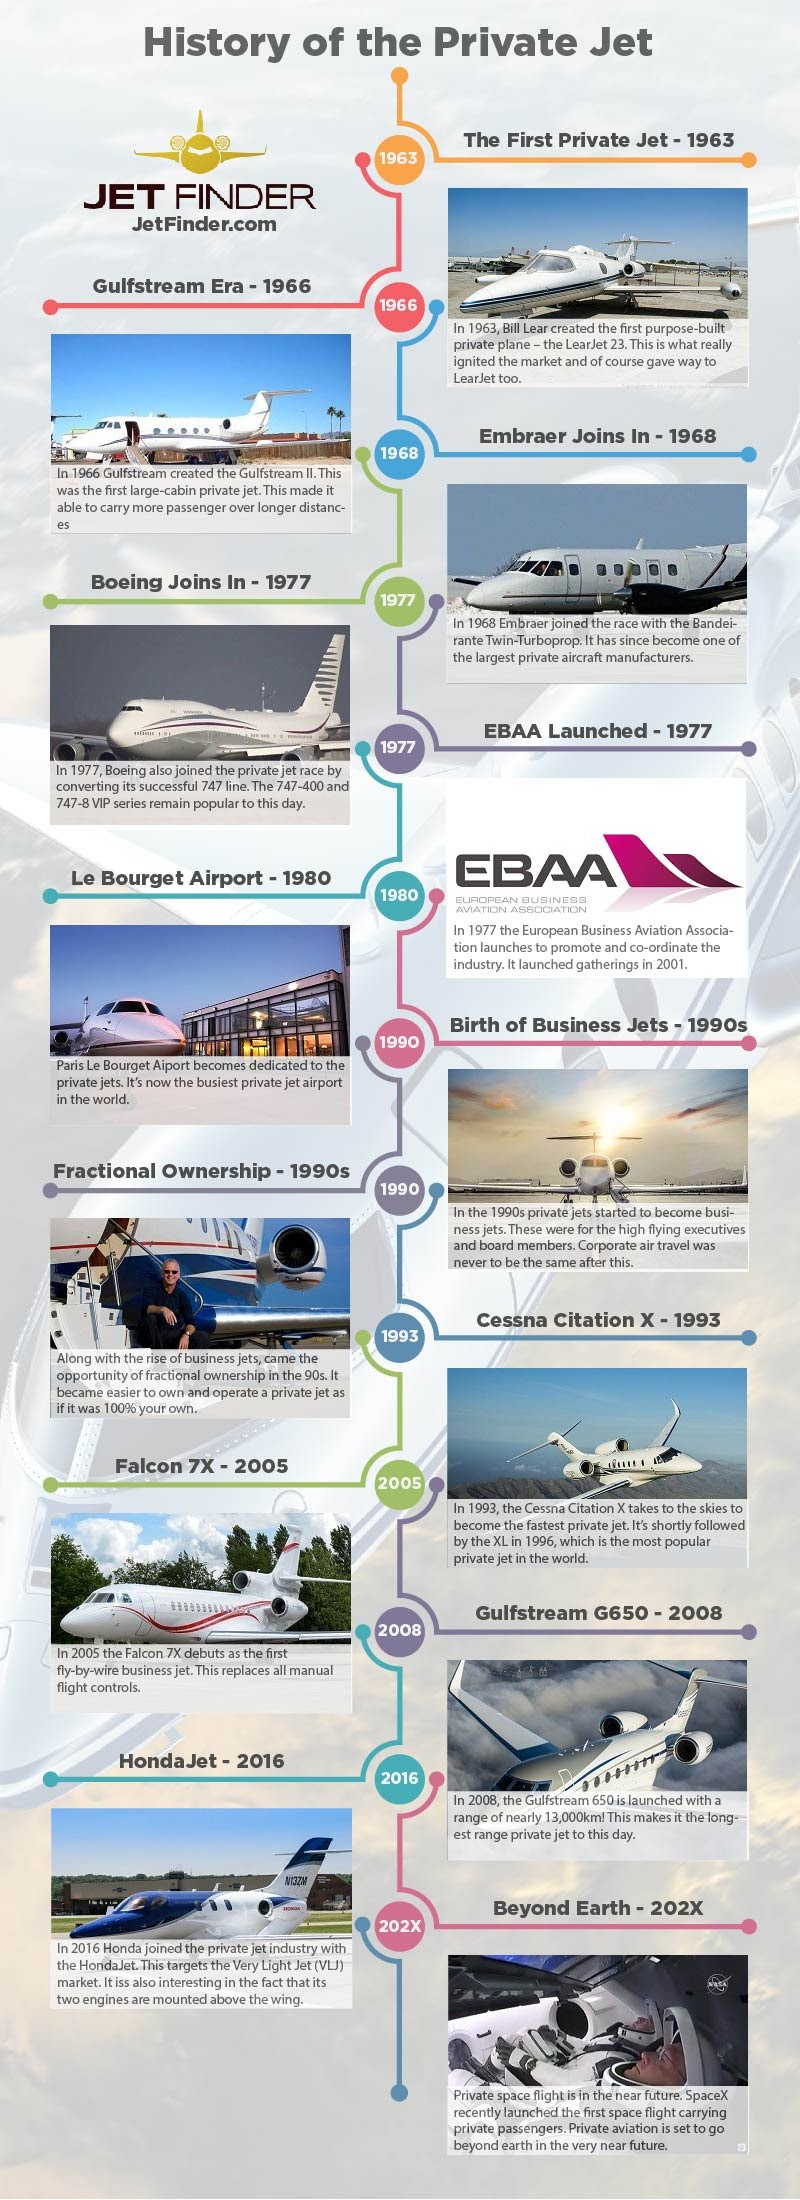 History of the Private Jet #infographic